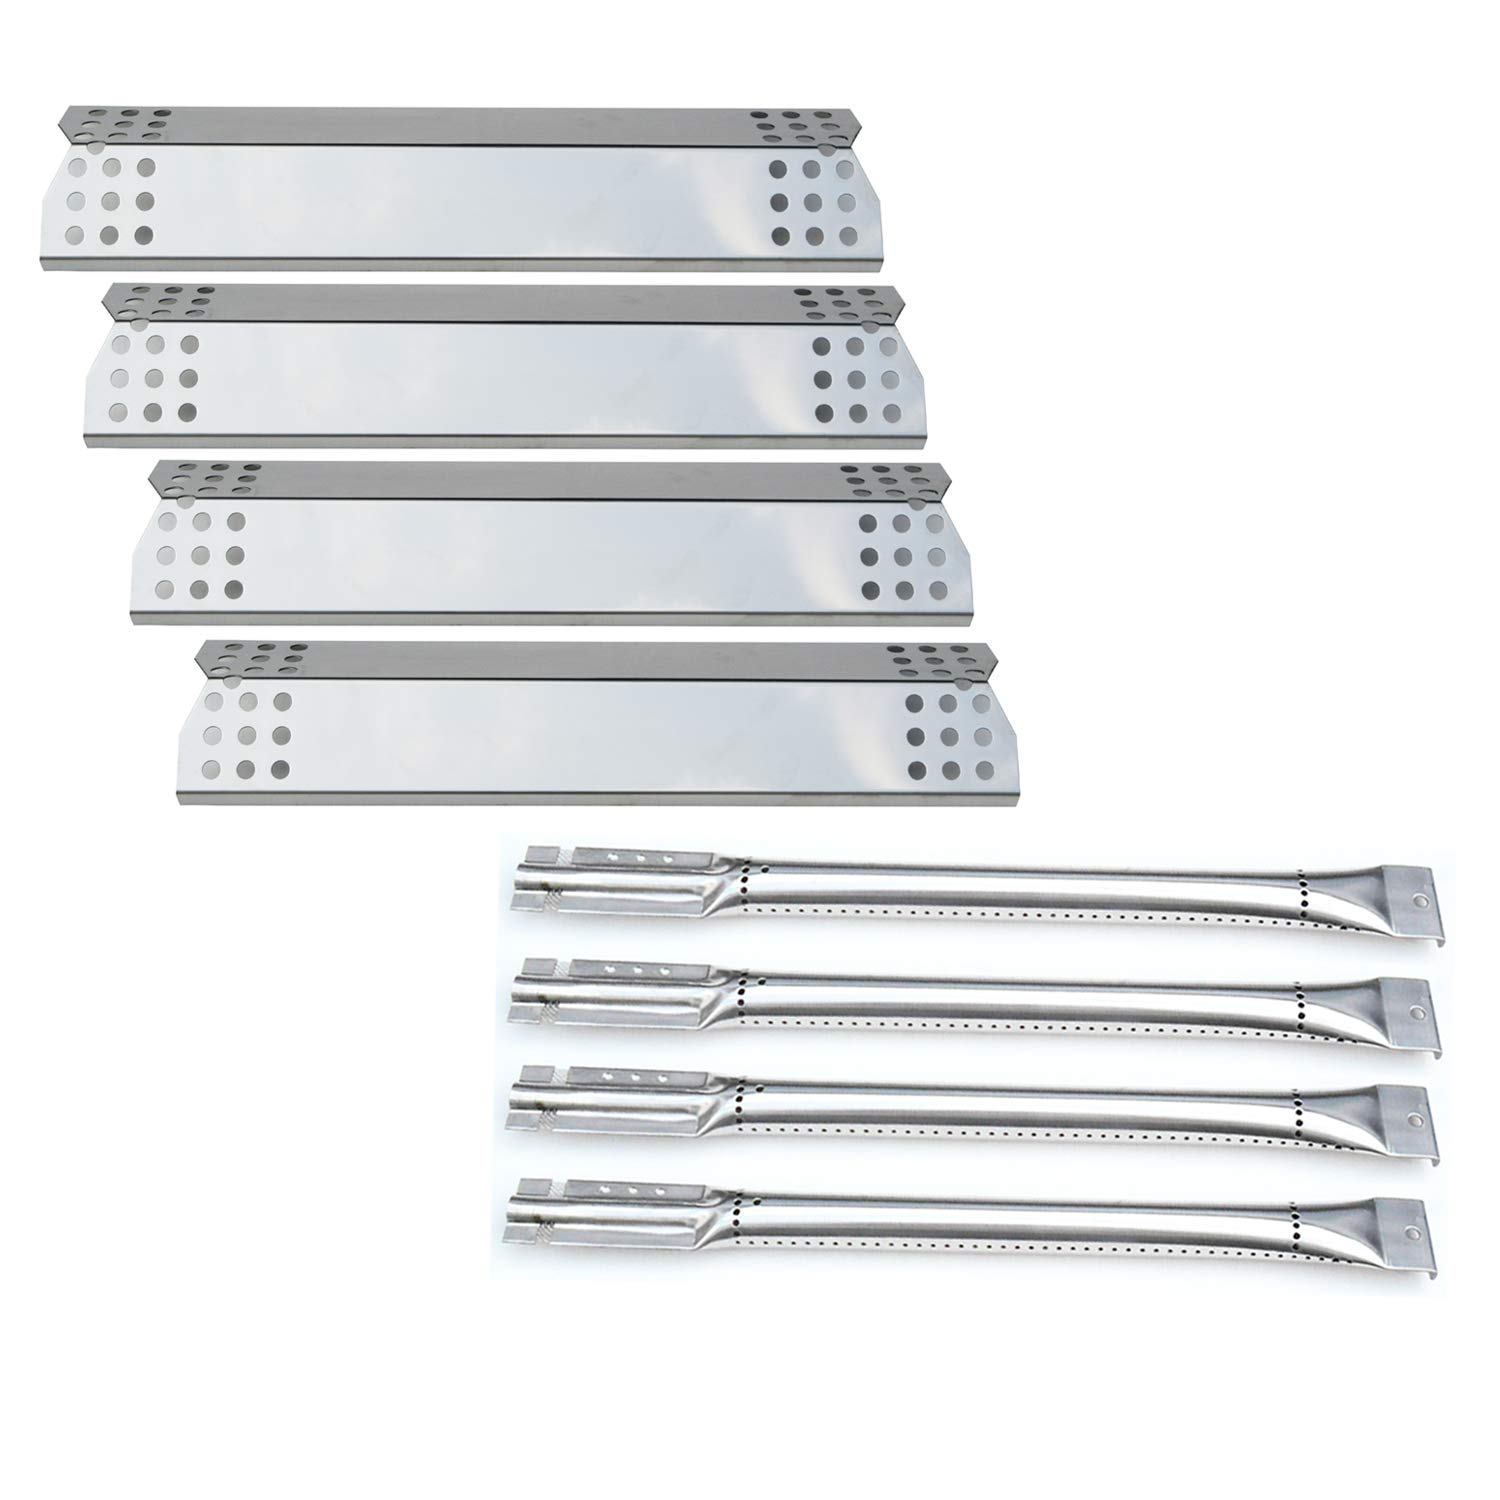 Direct store Parts Kit DG173 Replacement Kitchen Aid 720-0733A,4 Burner Gas Grill Burner,Heat Plate (Stainless Steel Burner + Stainless Steel Heat Plate)